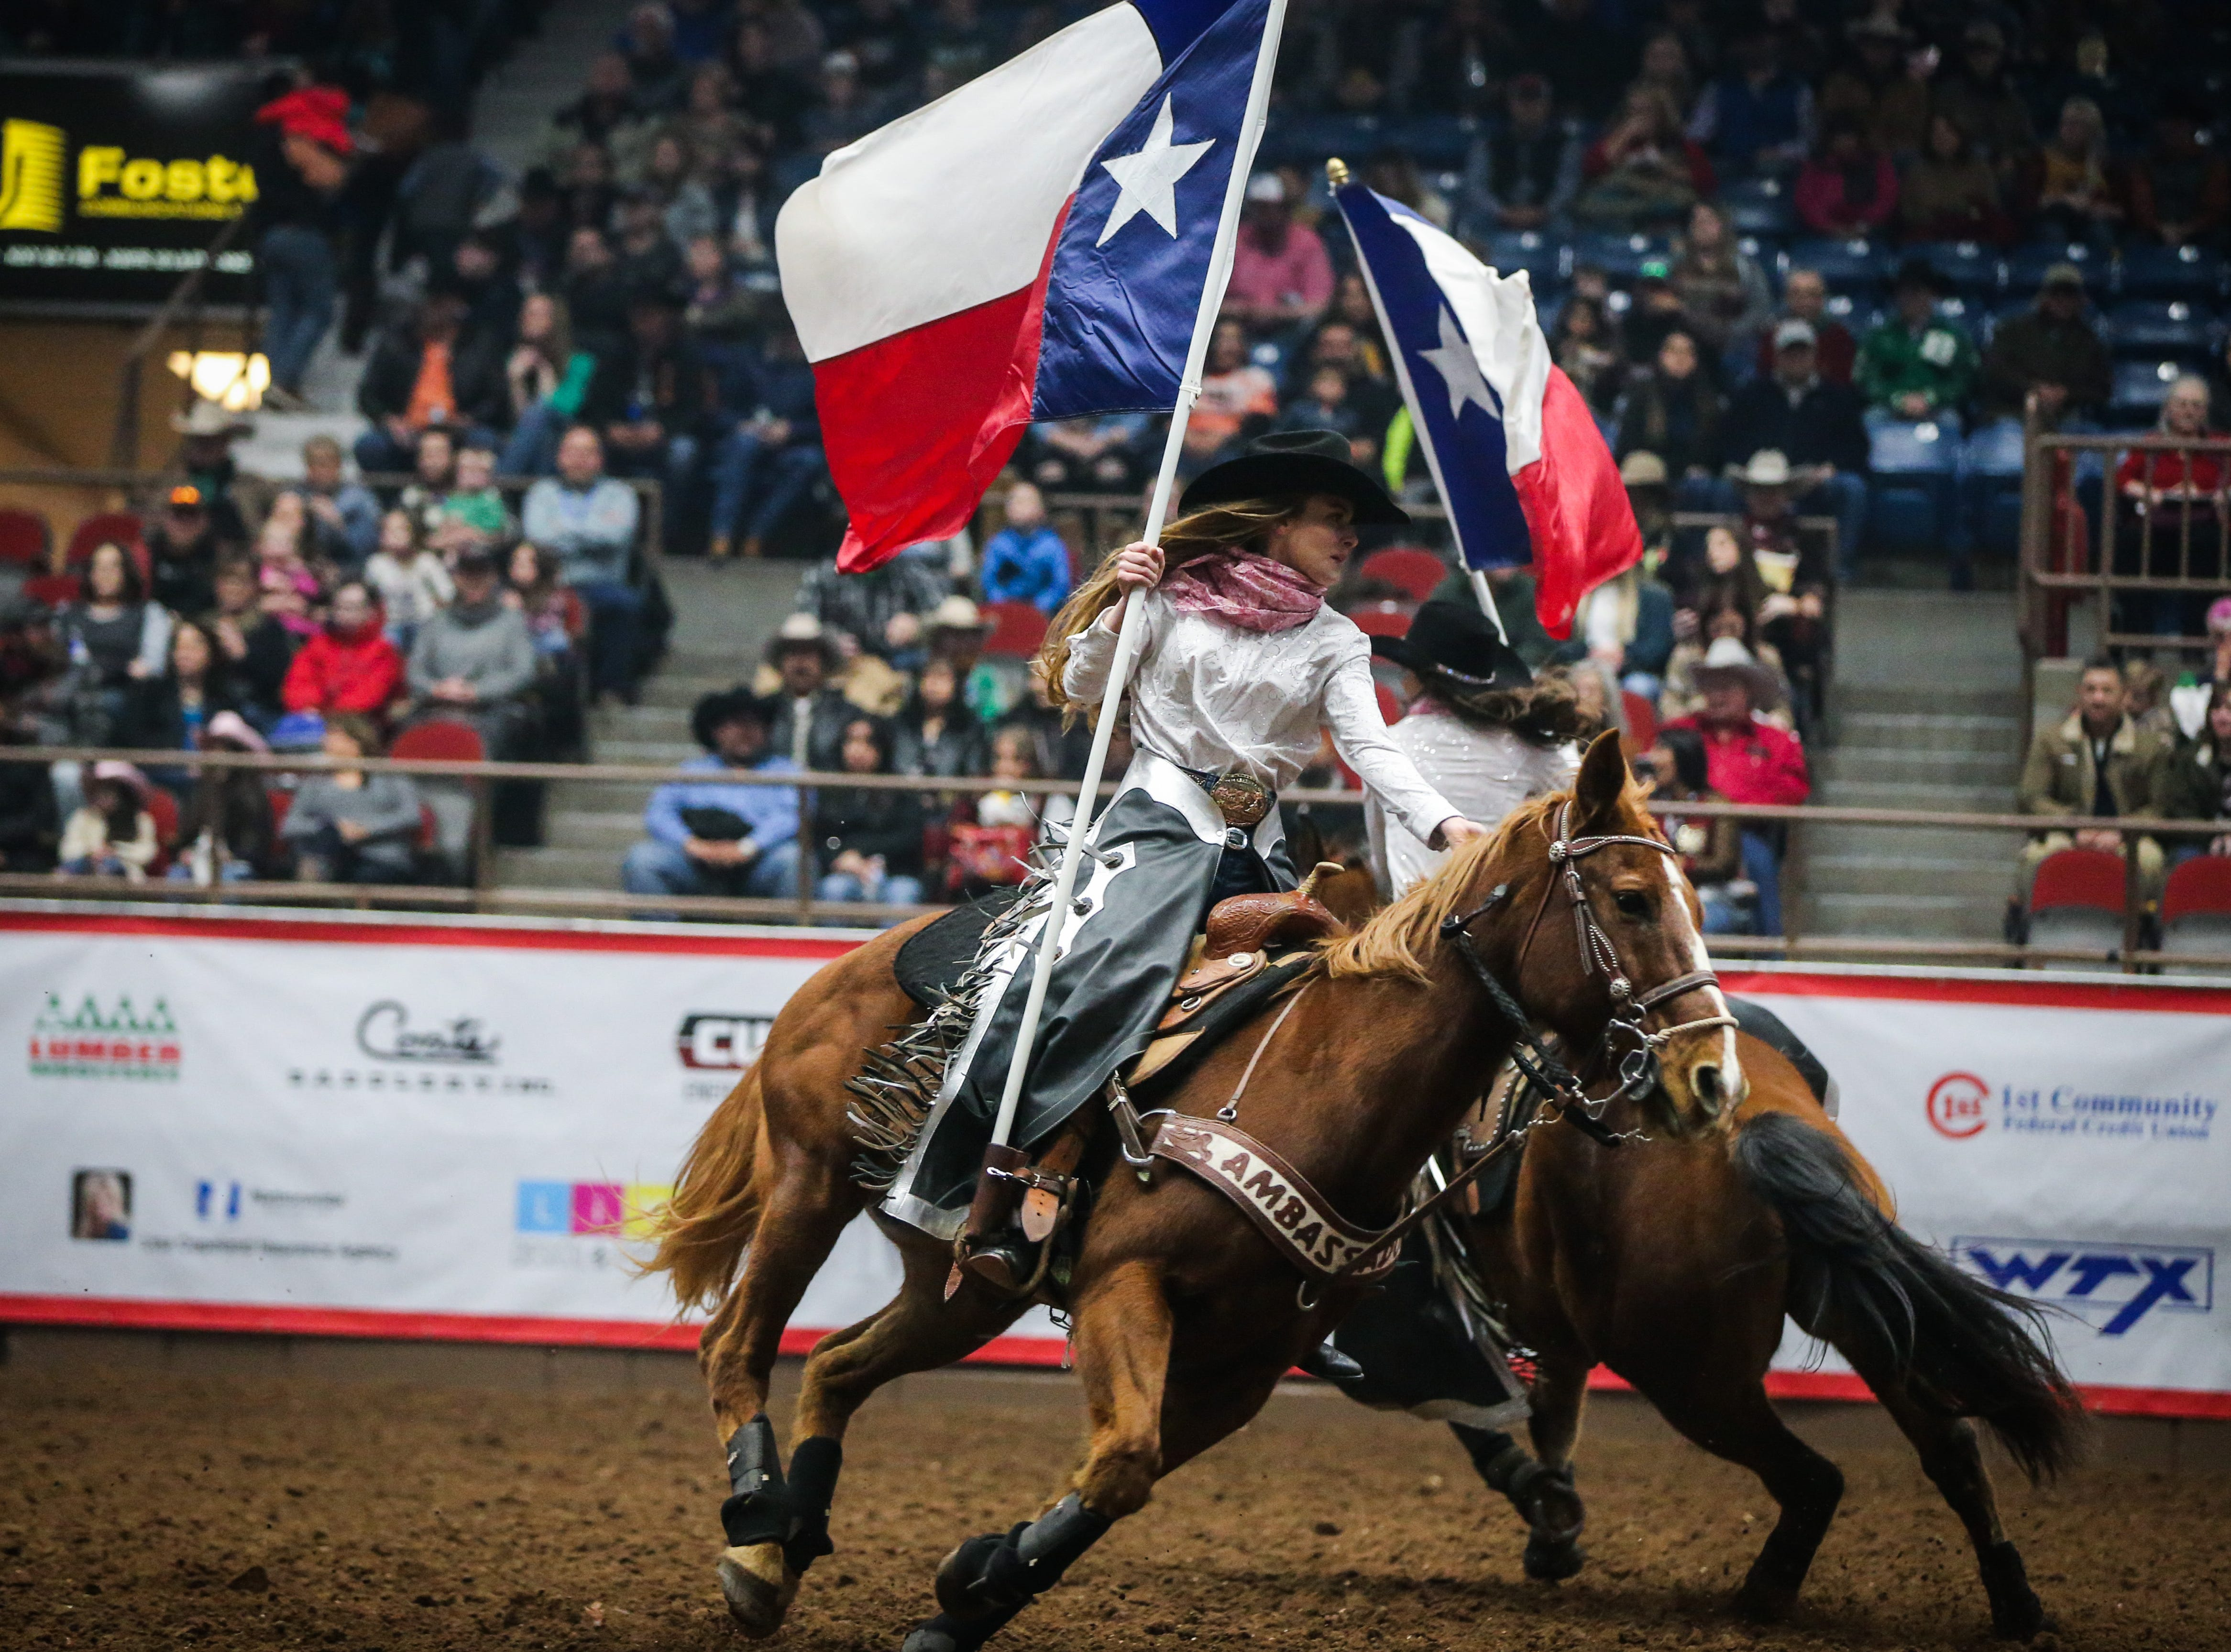 The San Angelo Ambassadors ride in the arena during the San Angelo Stock Show & Rodeo matinee show Saturday, Feb. 9, 2019, at Foster Communications Coliseum.